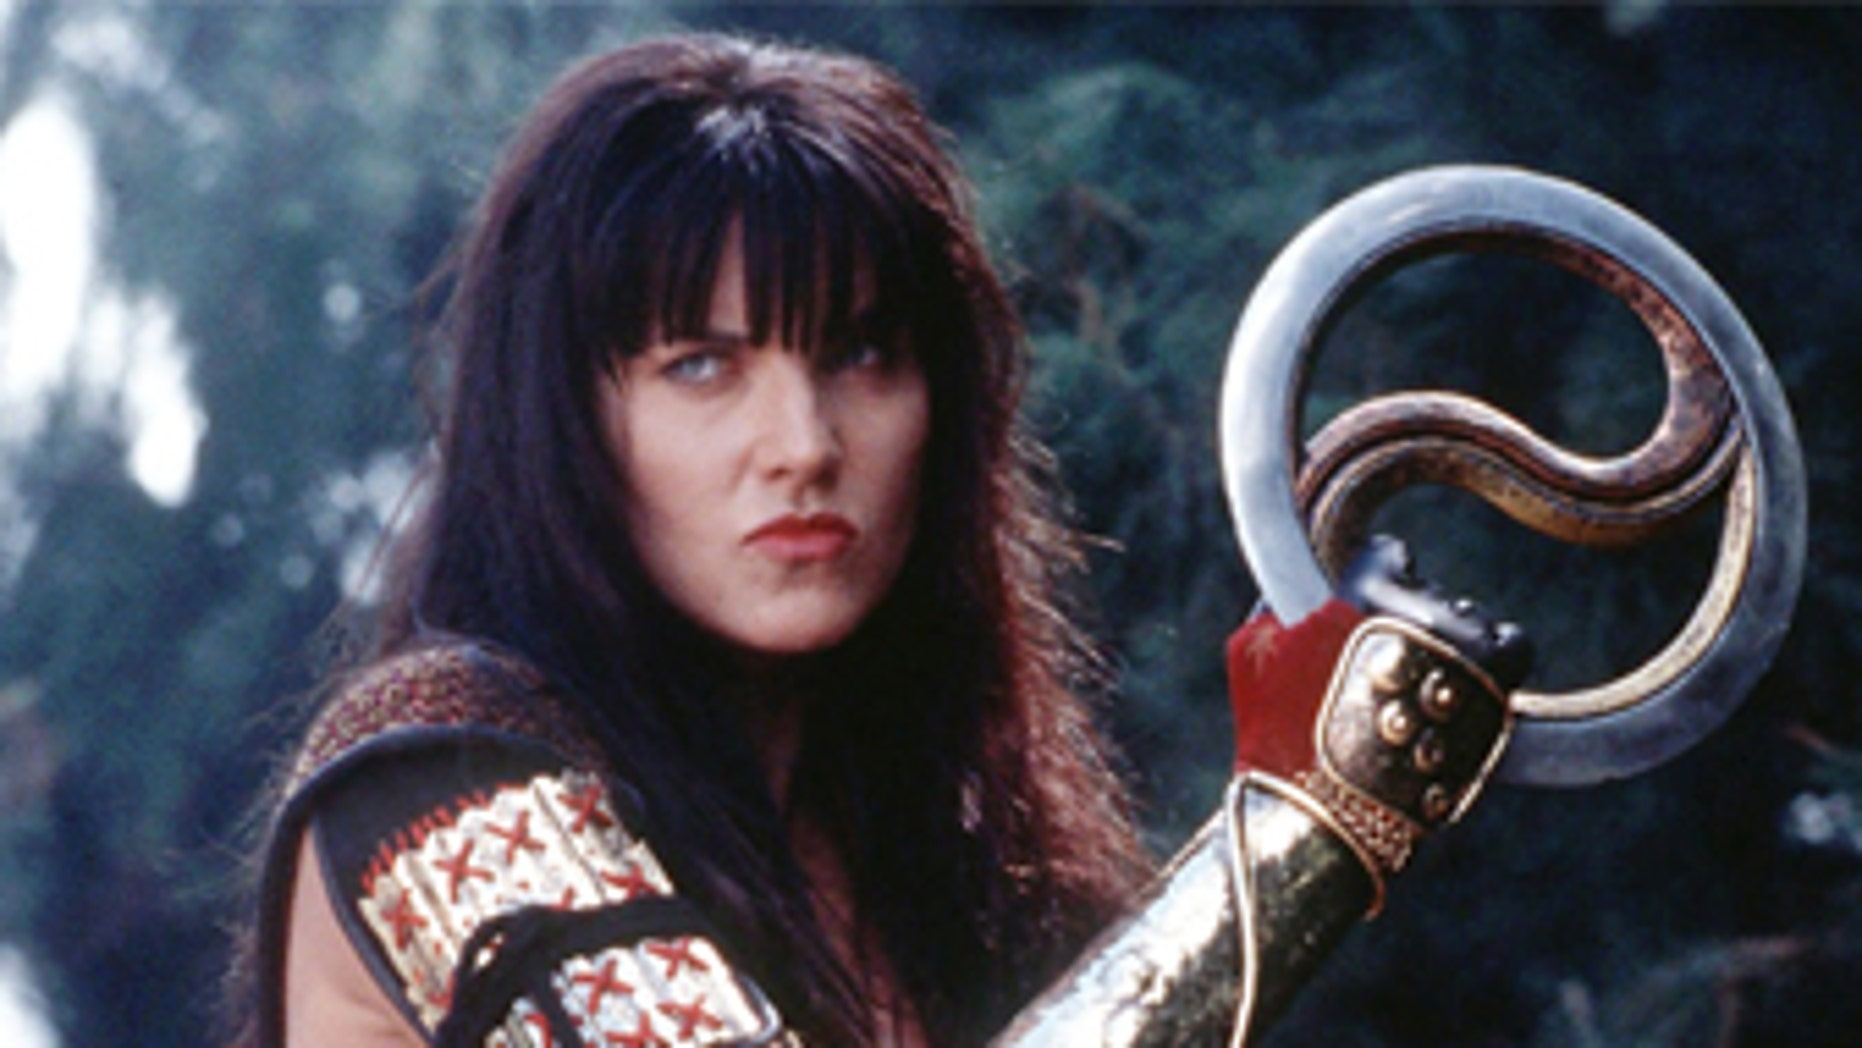 """Lucy Lawless as Xena in scene from final episode of the TV series """"Xena, Warrior Princess."""""""